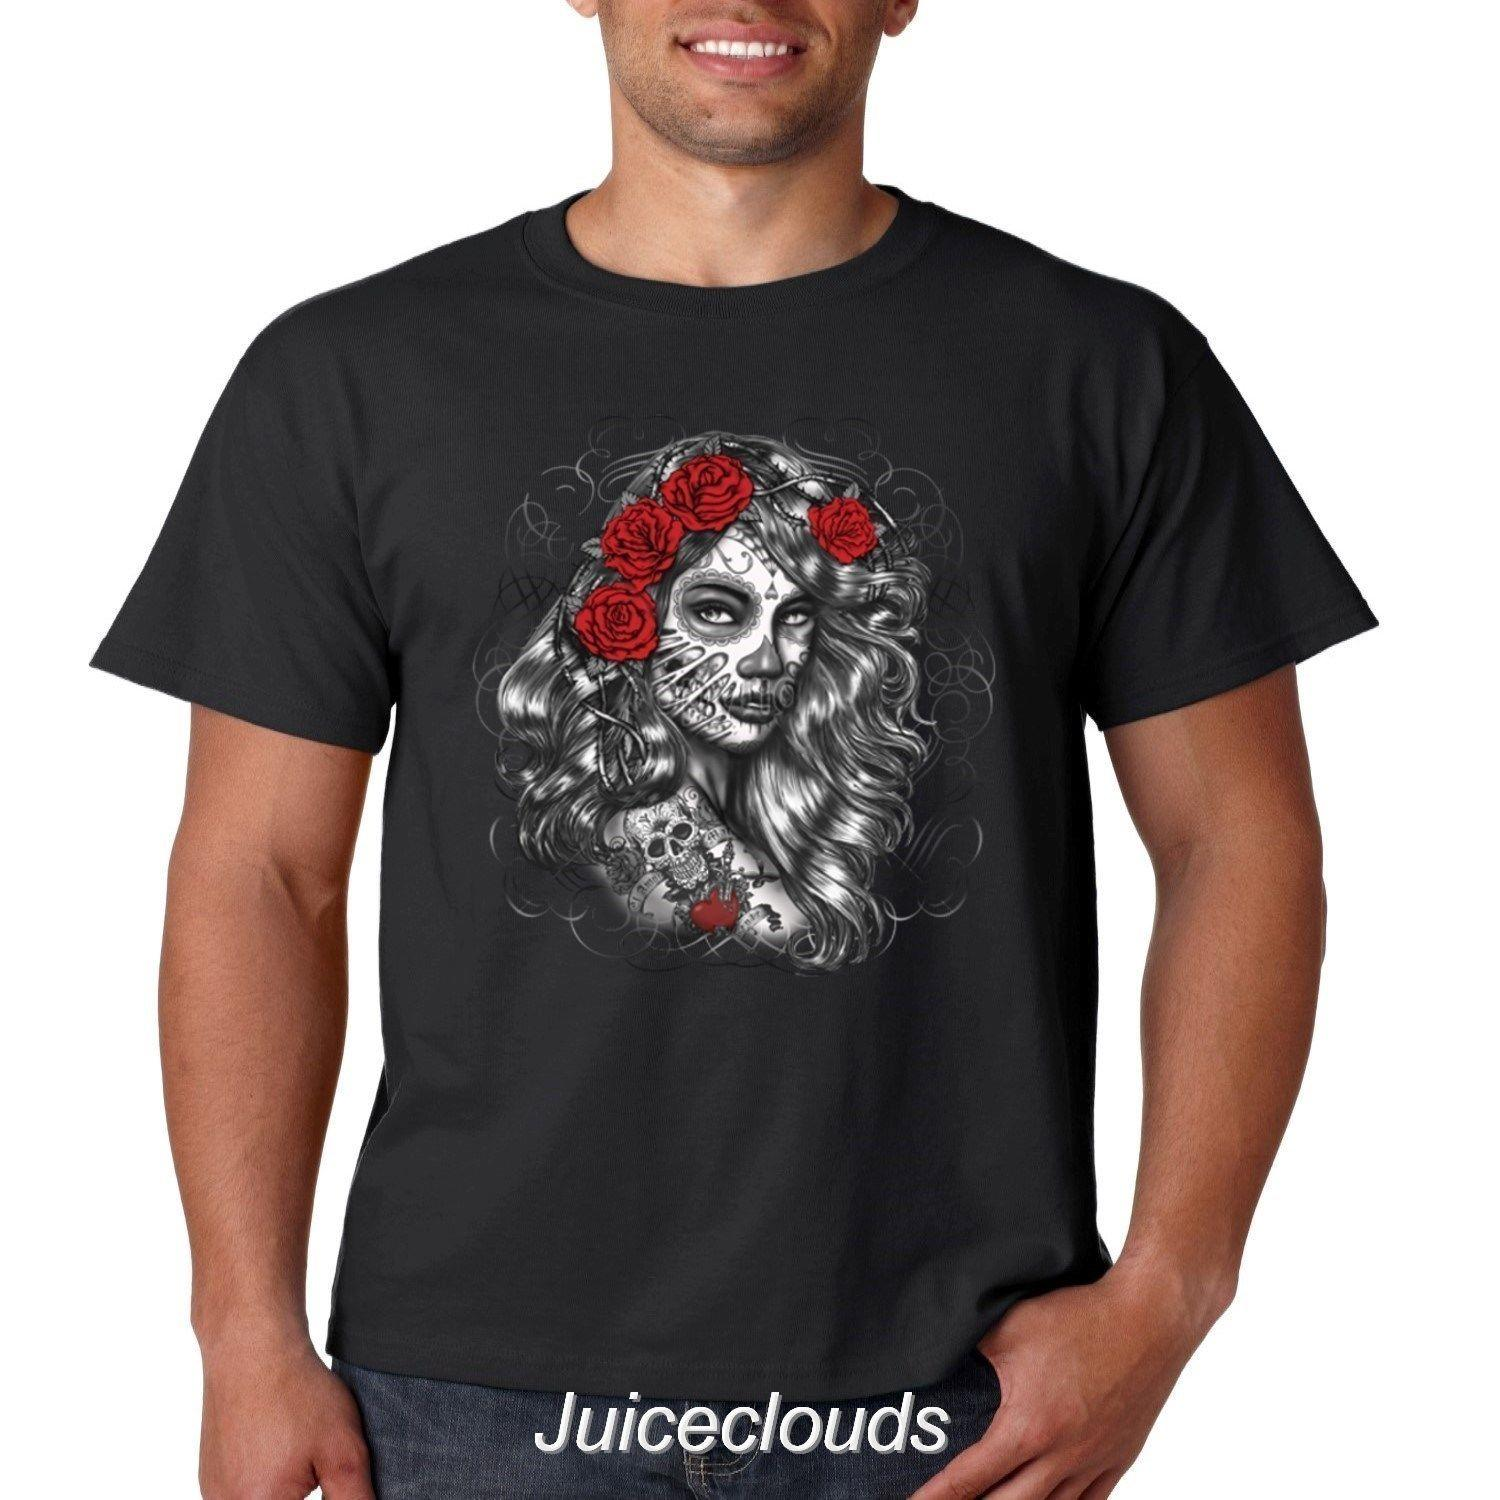 c5df5091 Sugar Skull T Shirt Red Rose Day Of The Dead Girl Tattoo Men'S Tee Fashion T  Shirts Print Shirt From Space84, $11.48  DHgate.Com